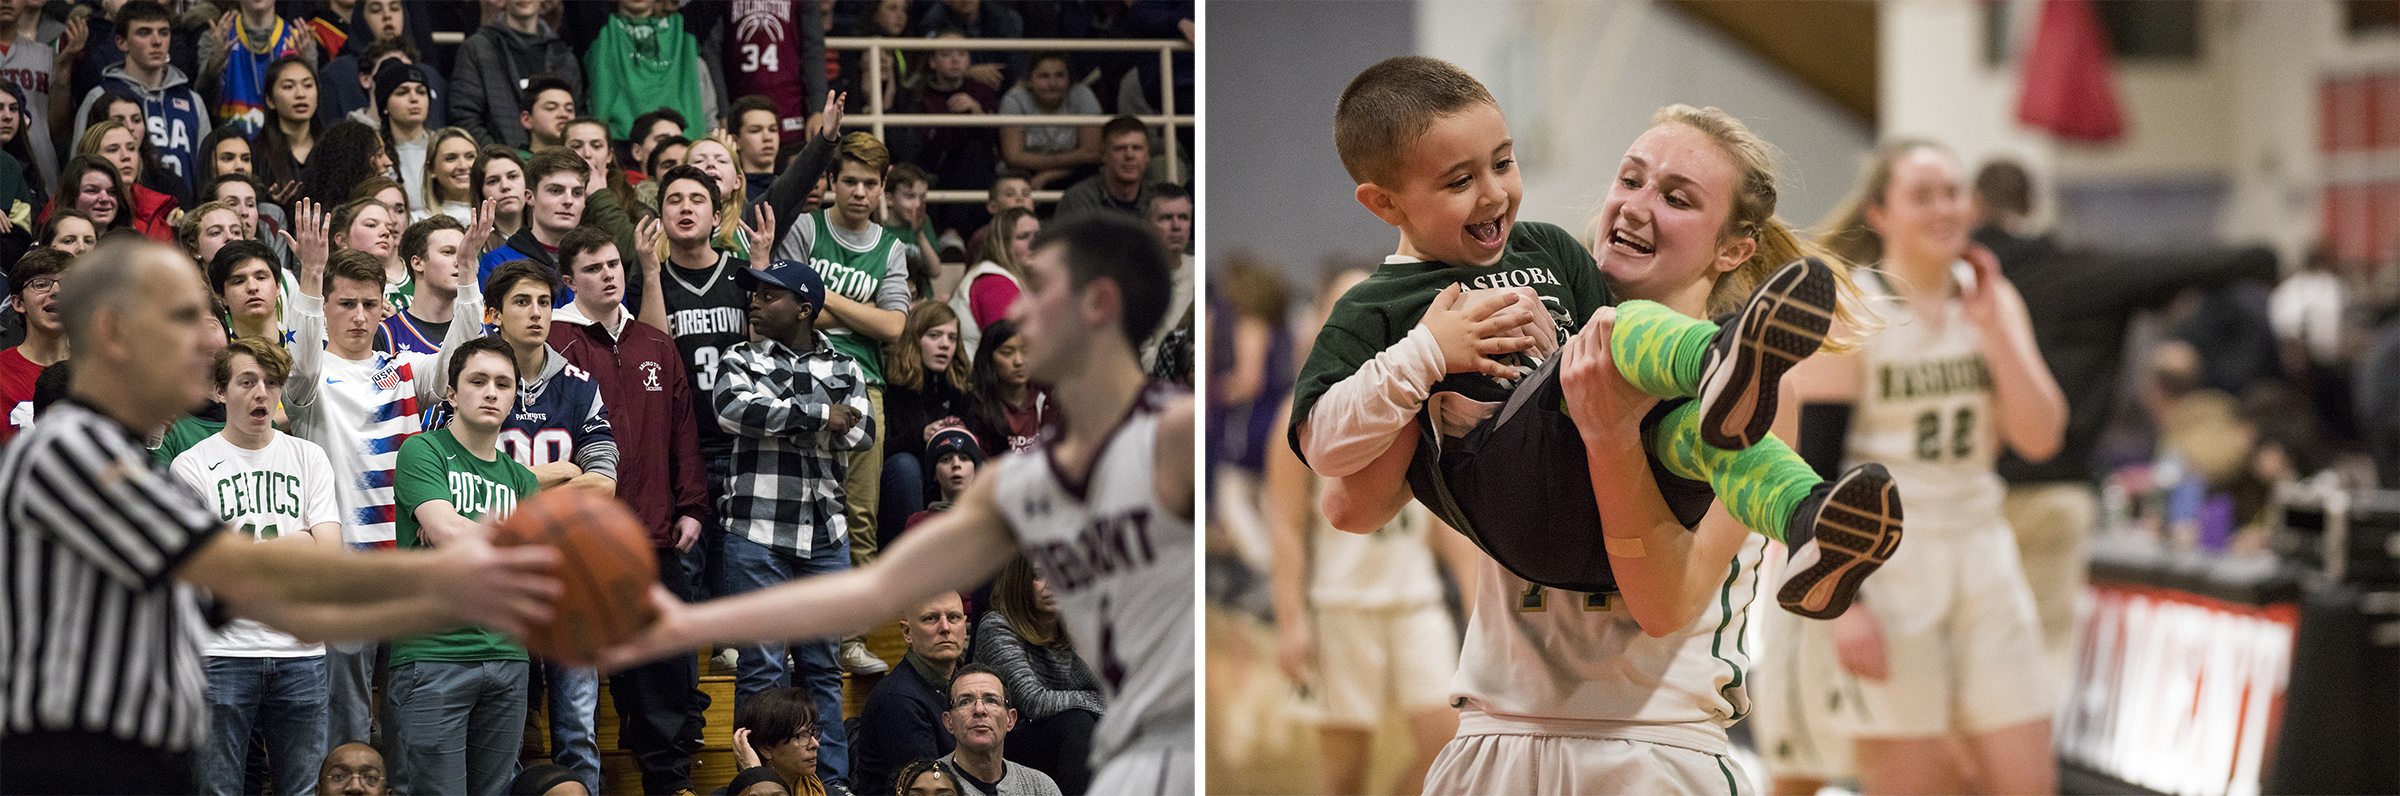 (Left) Arlington fans react after the ball is turned over to Belmont during the game in Belmont on Mar. 1, 2019. (Right) Nashoba senior Julia Roth lifts her coach's son Patrick Seabury, 4, in celebration after winning the game against Saint Peter-Marian at the Kneller Center in Worcester on Mar. 4, 2019.